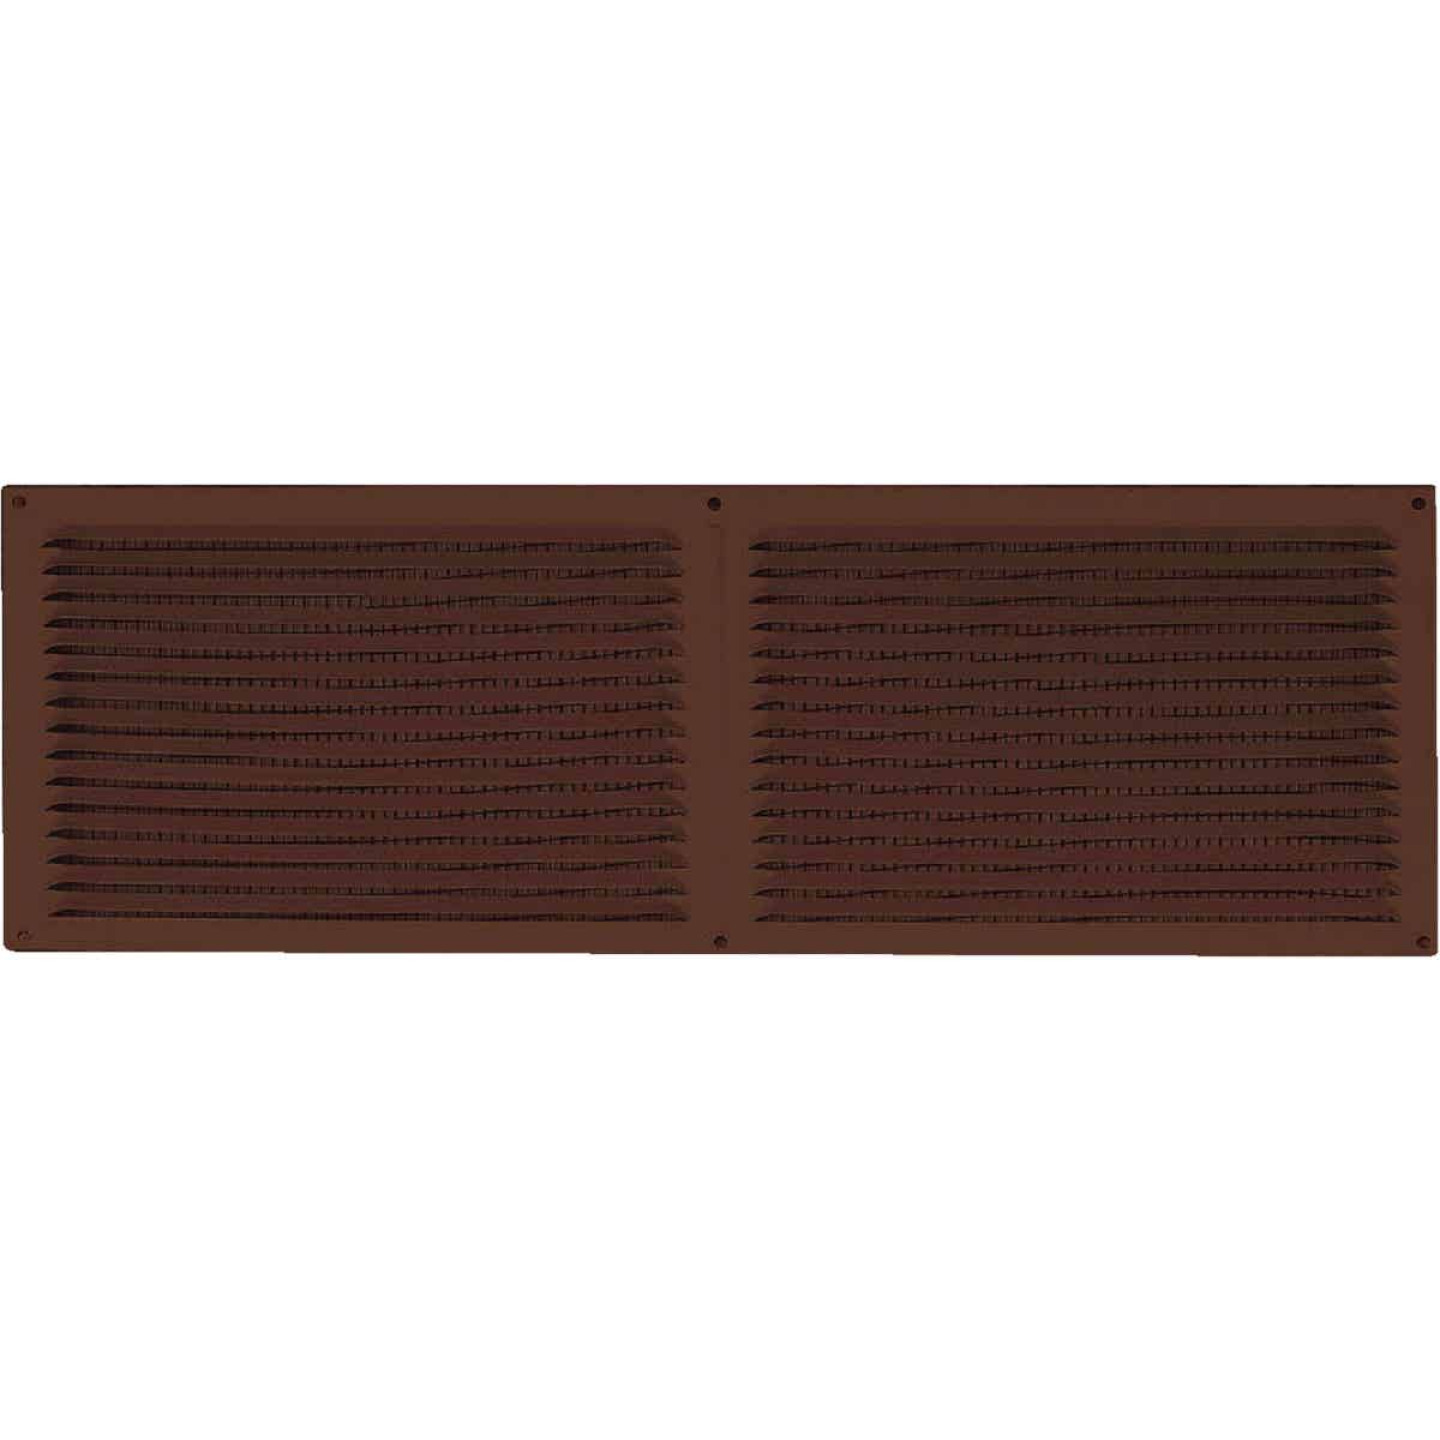 NorWesco 16 In. x 6 In. Brown Galvanized Soffit Ventilator Image 1